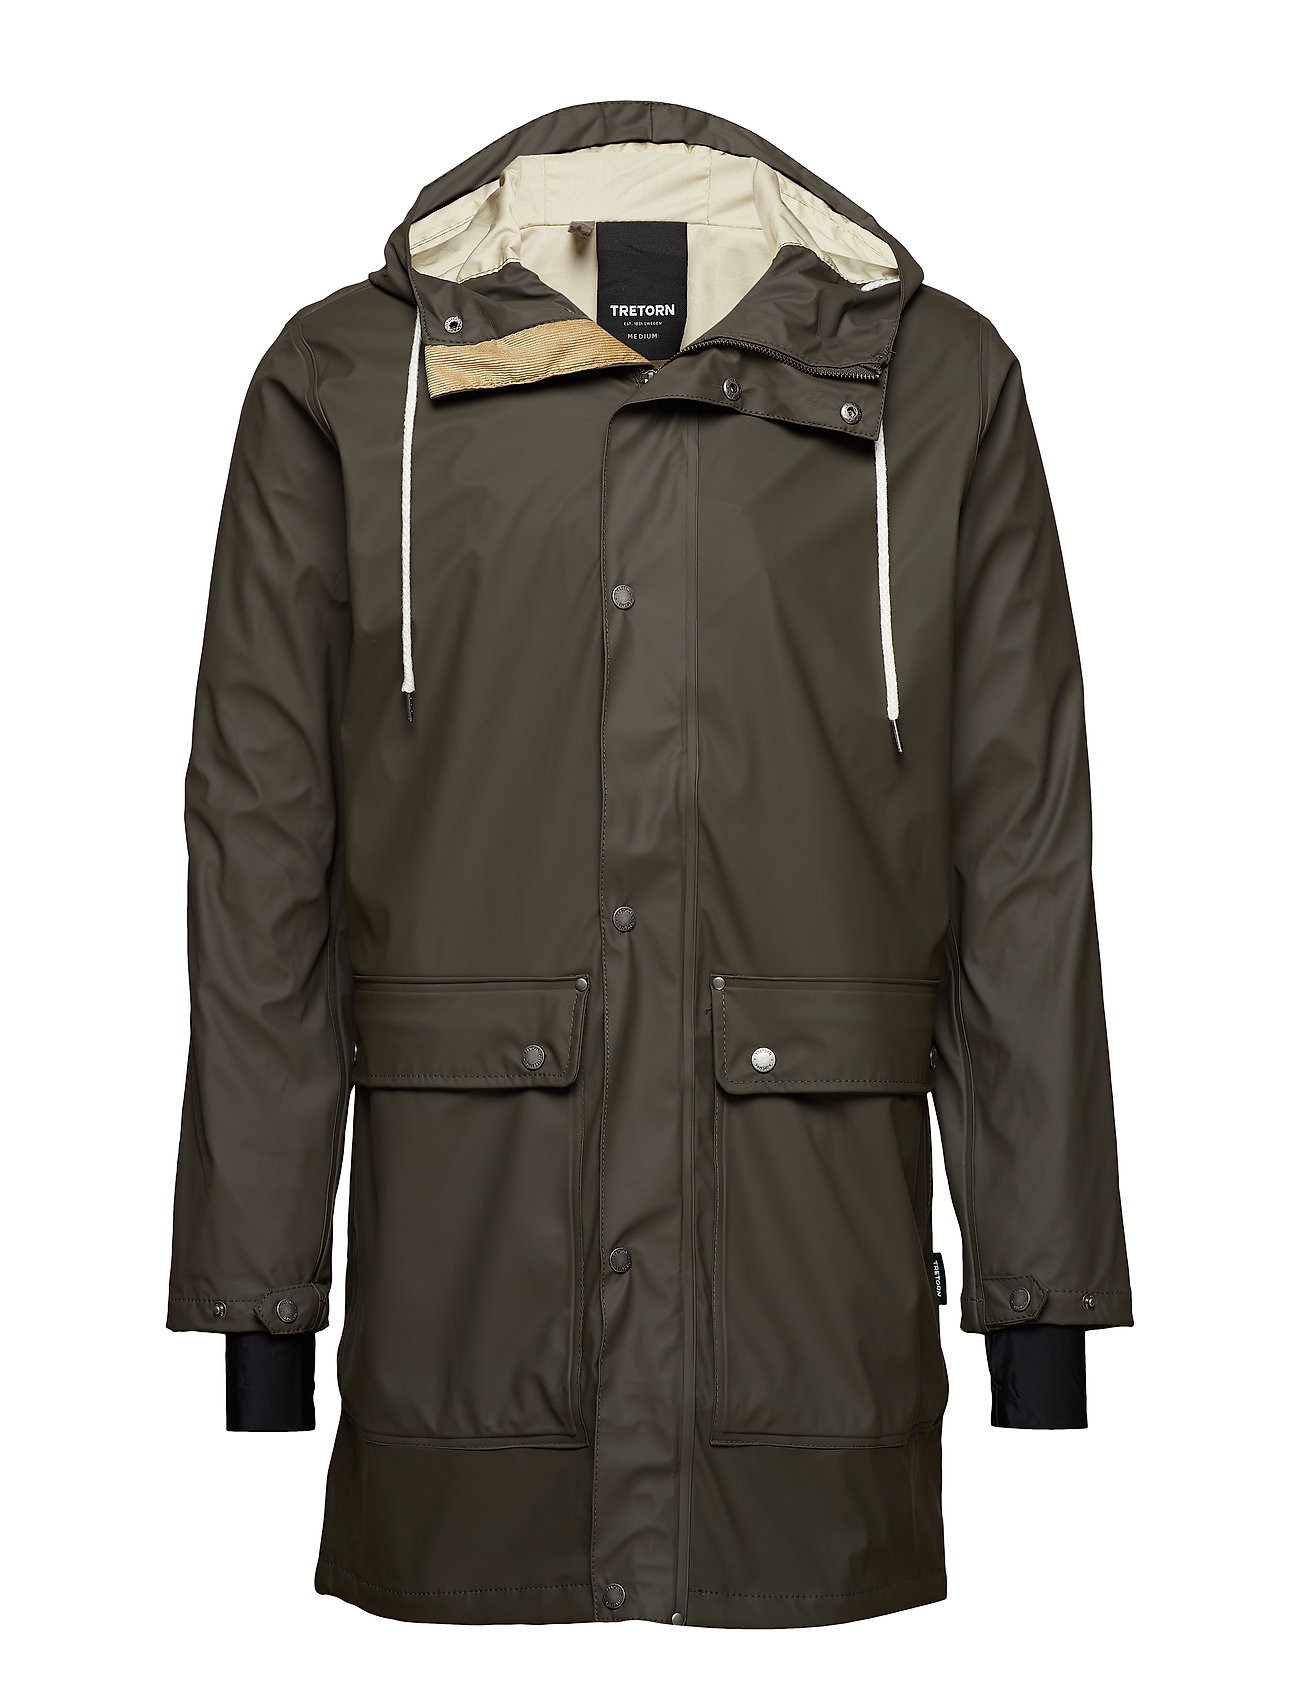 Tretorn EVALD 2.0 RAINCOAT - 066/BLACK OLIVE